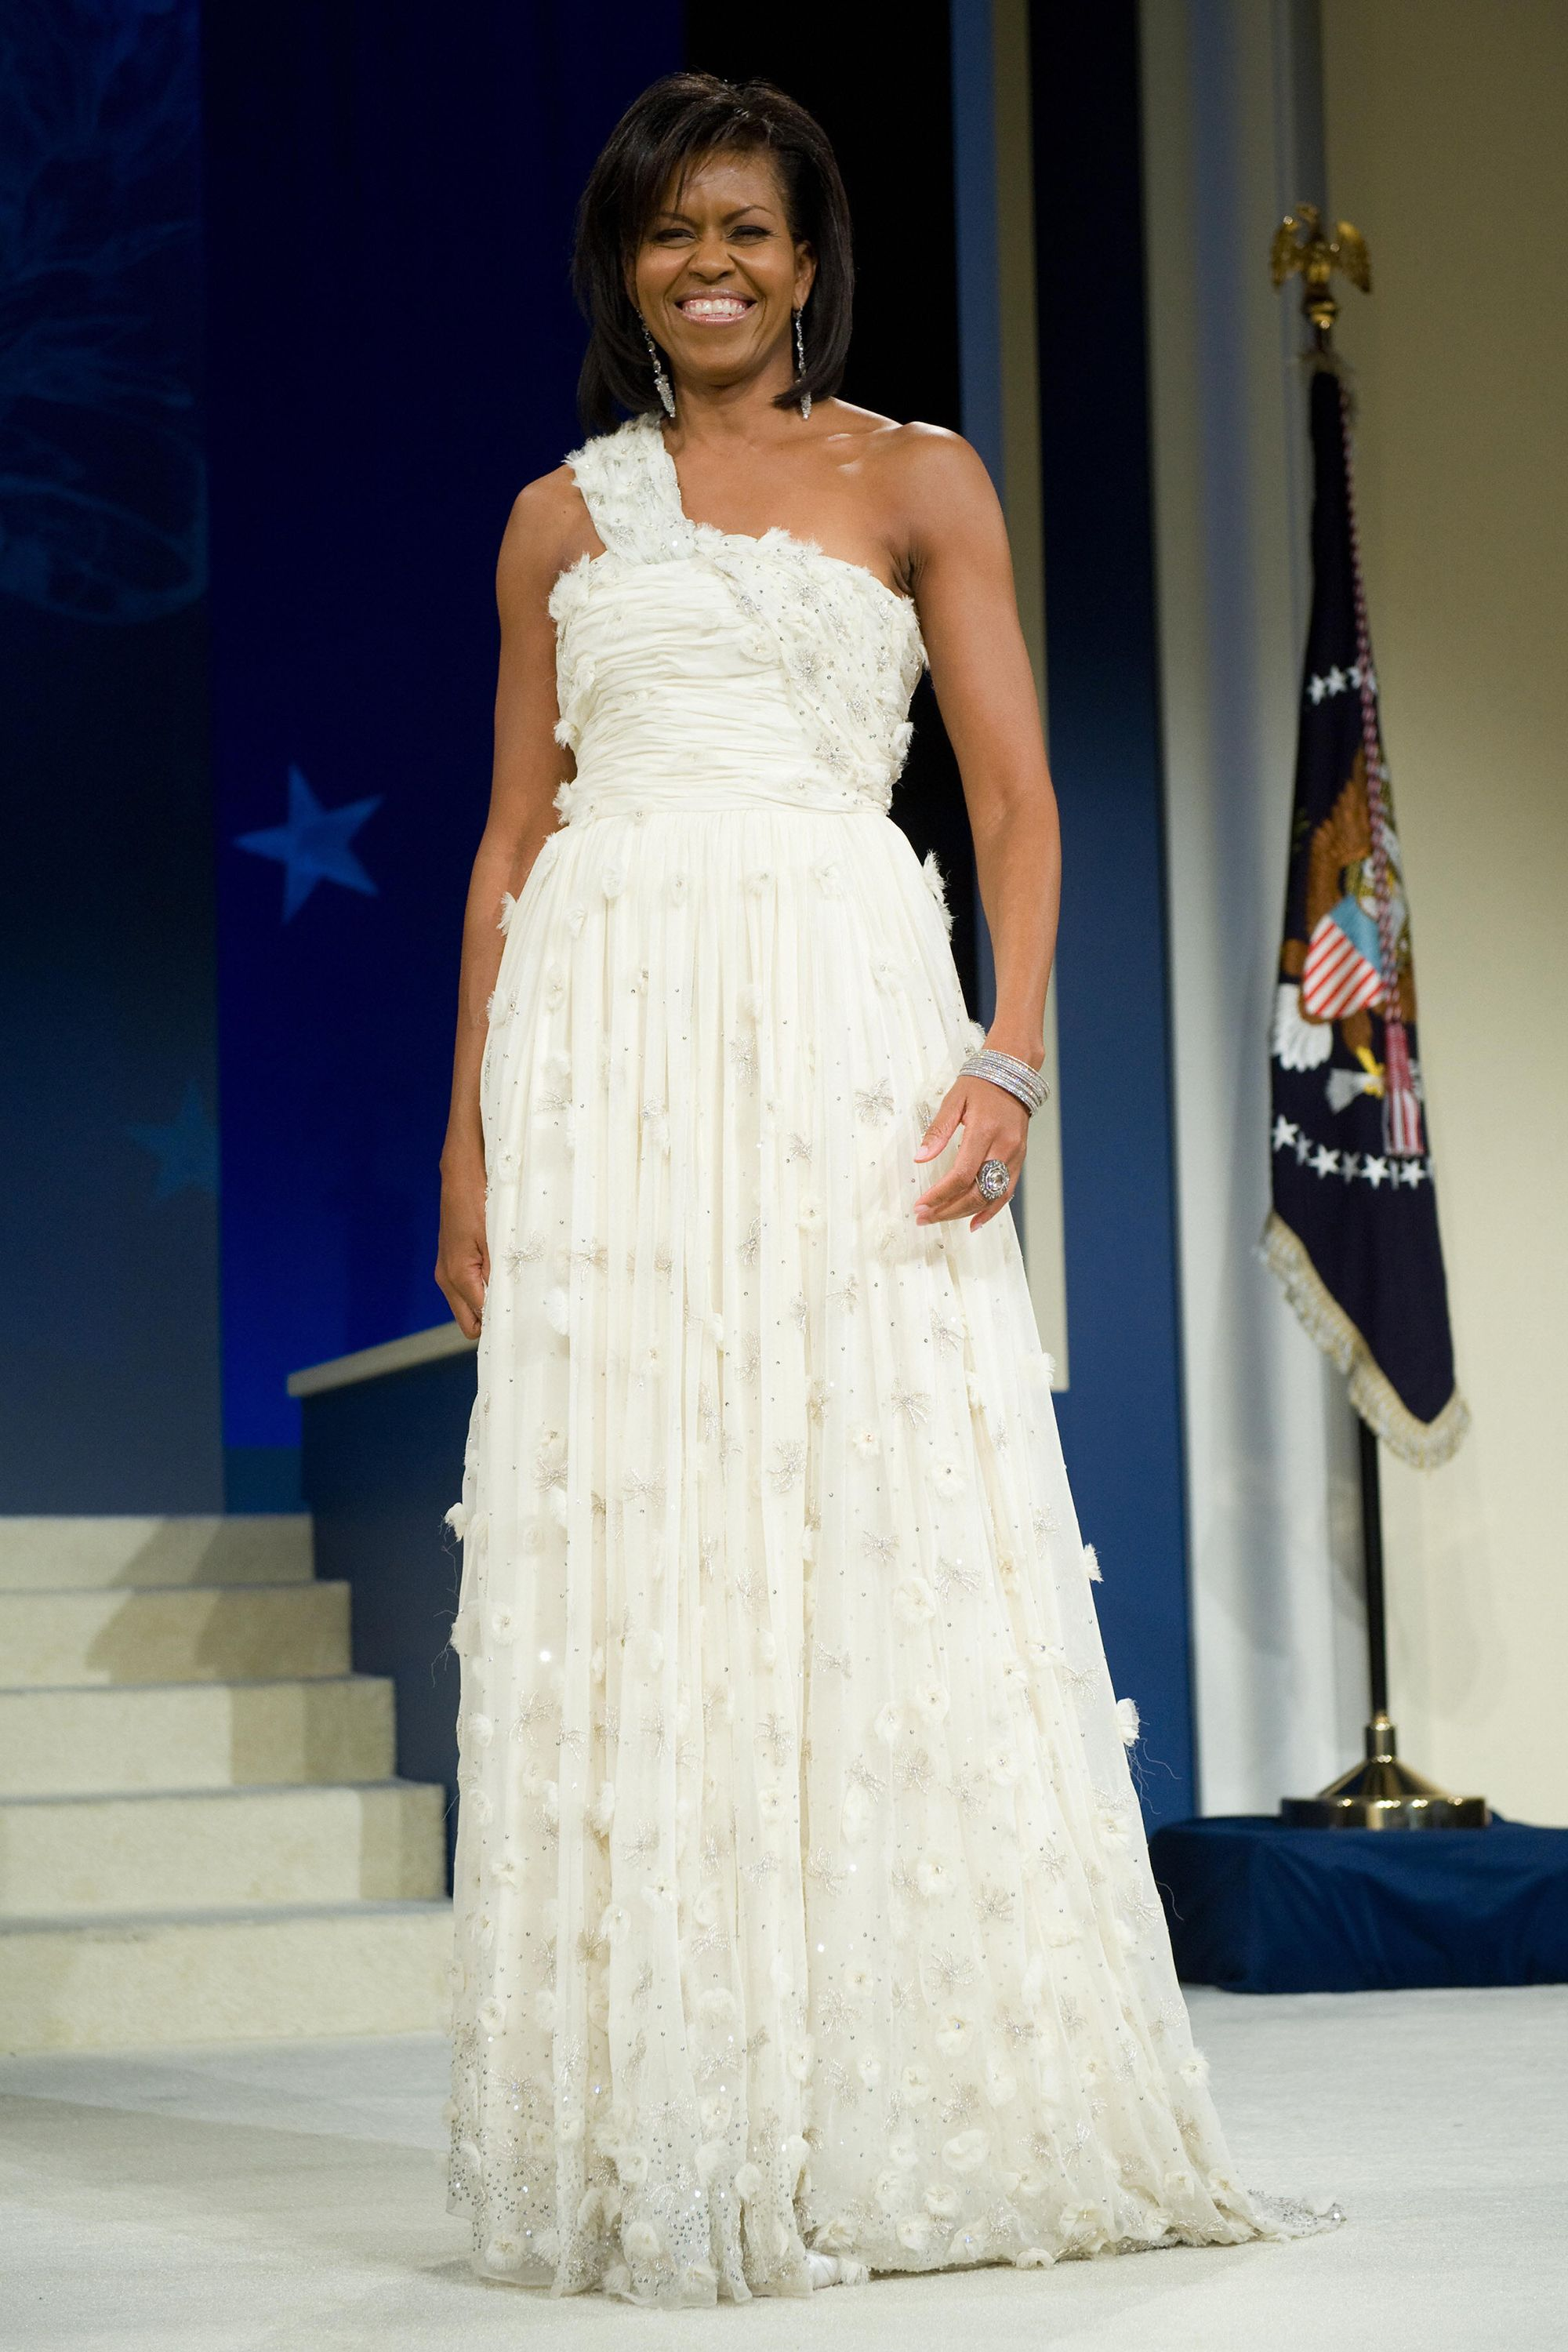 Michelle Obama Wedding Dress